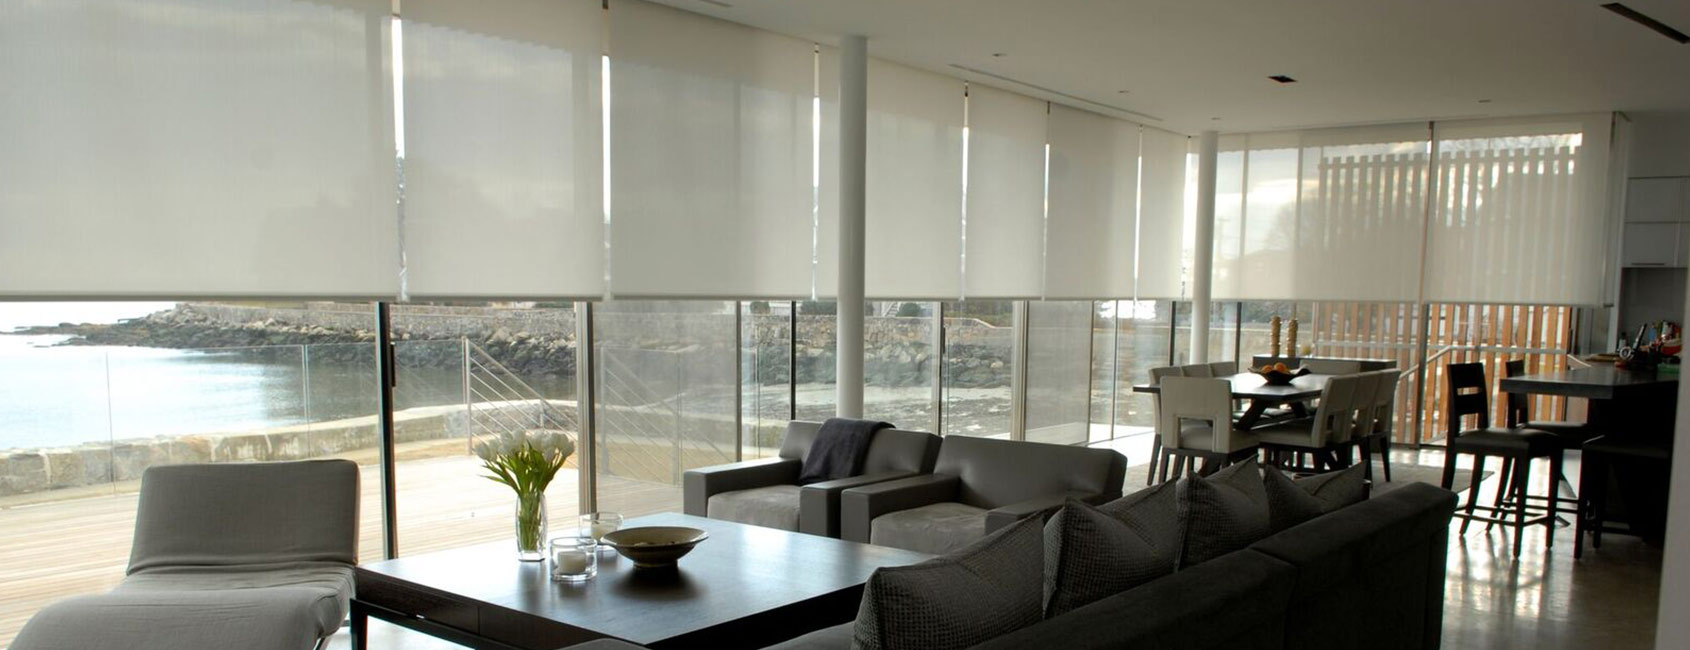 Lighting and Motorized Window Treatments